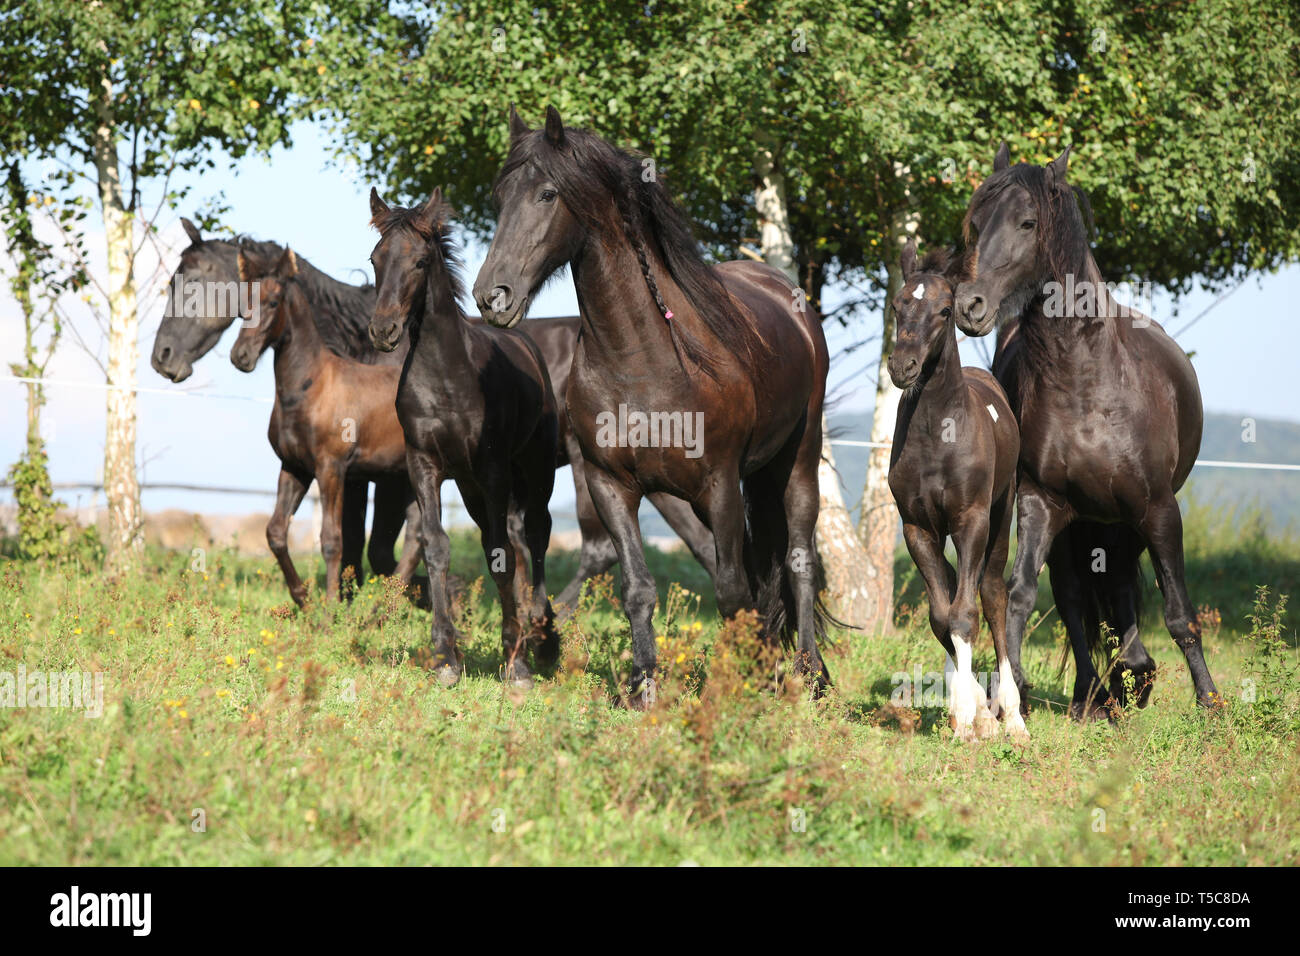 Beautiful Black Friesian Horses Running On Pasturage Stock Photo Alamy